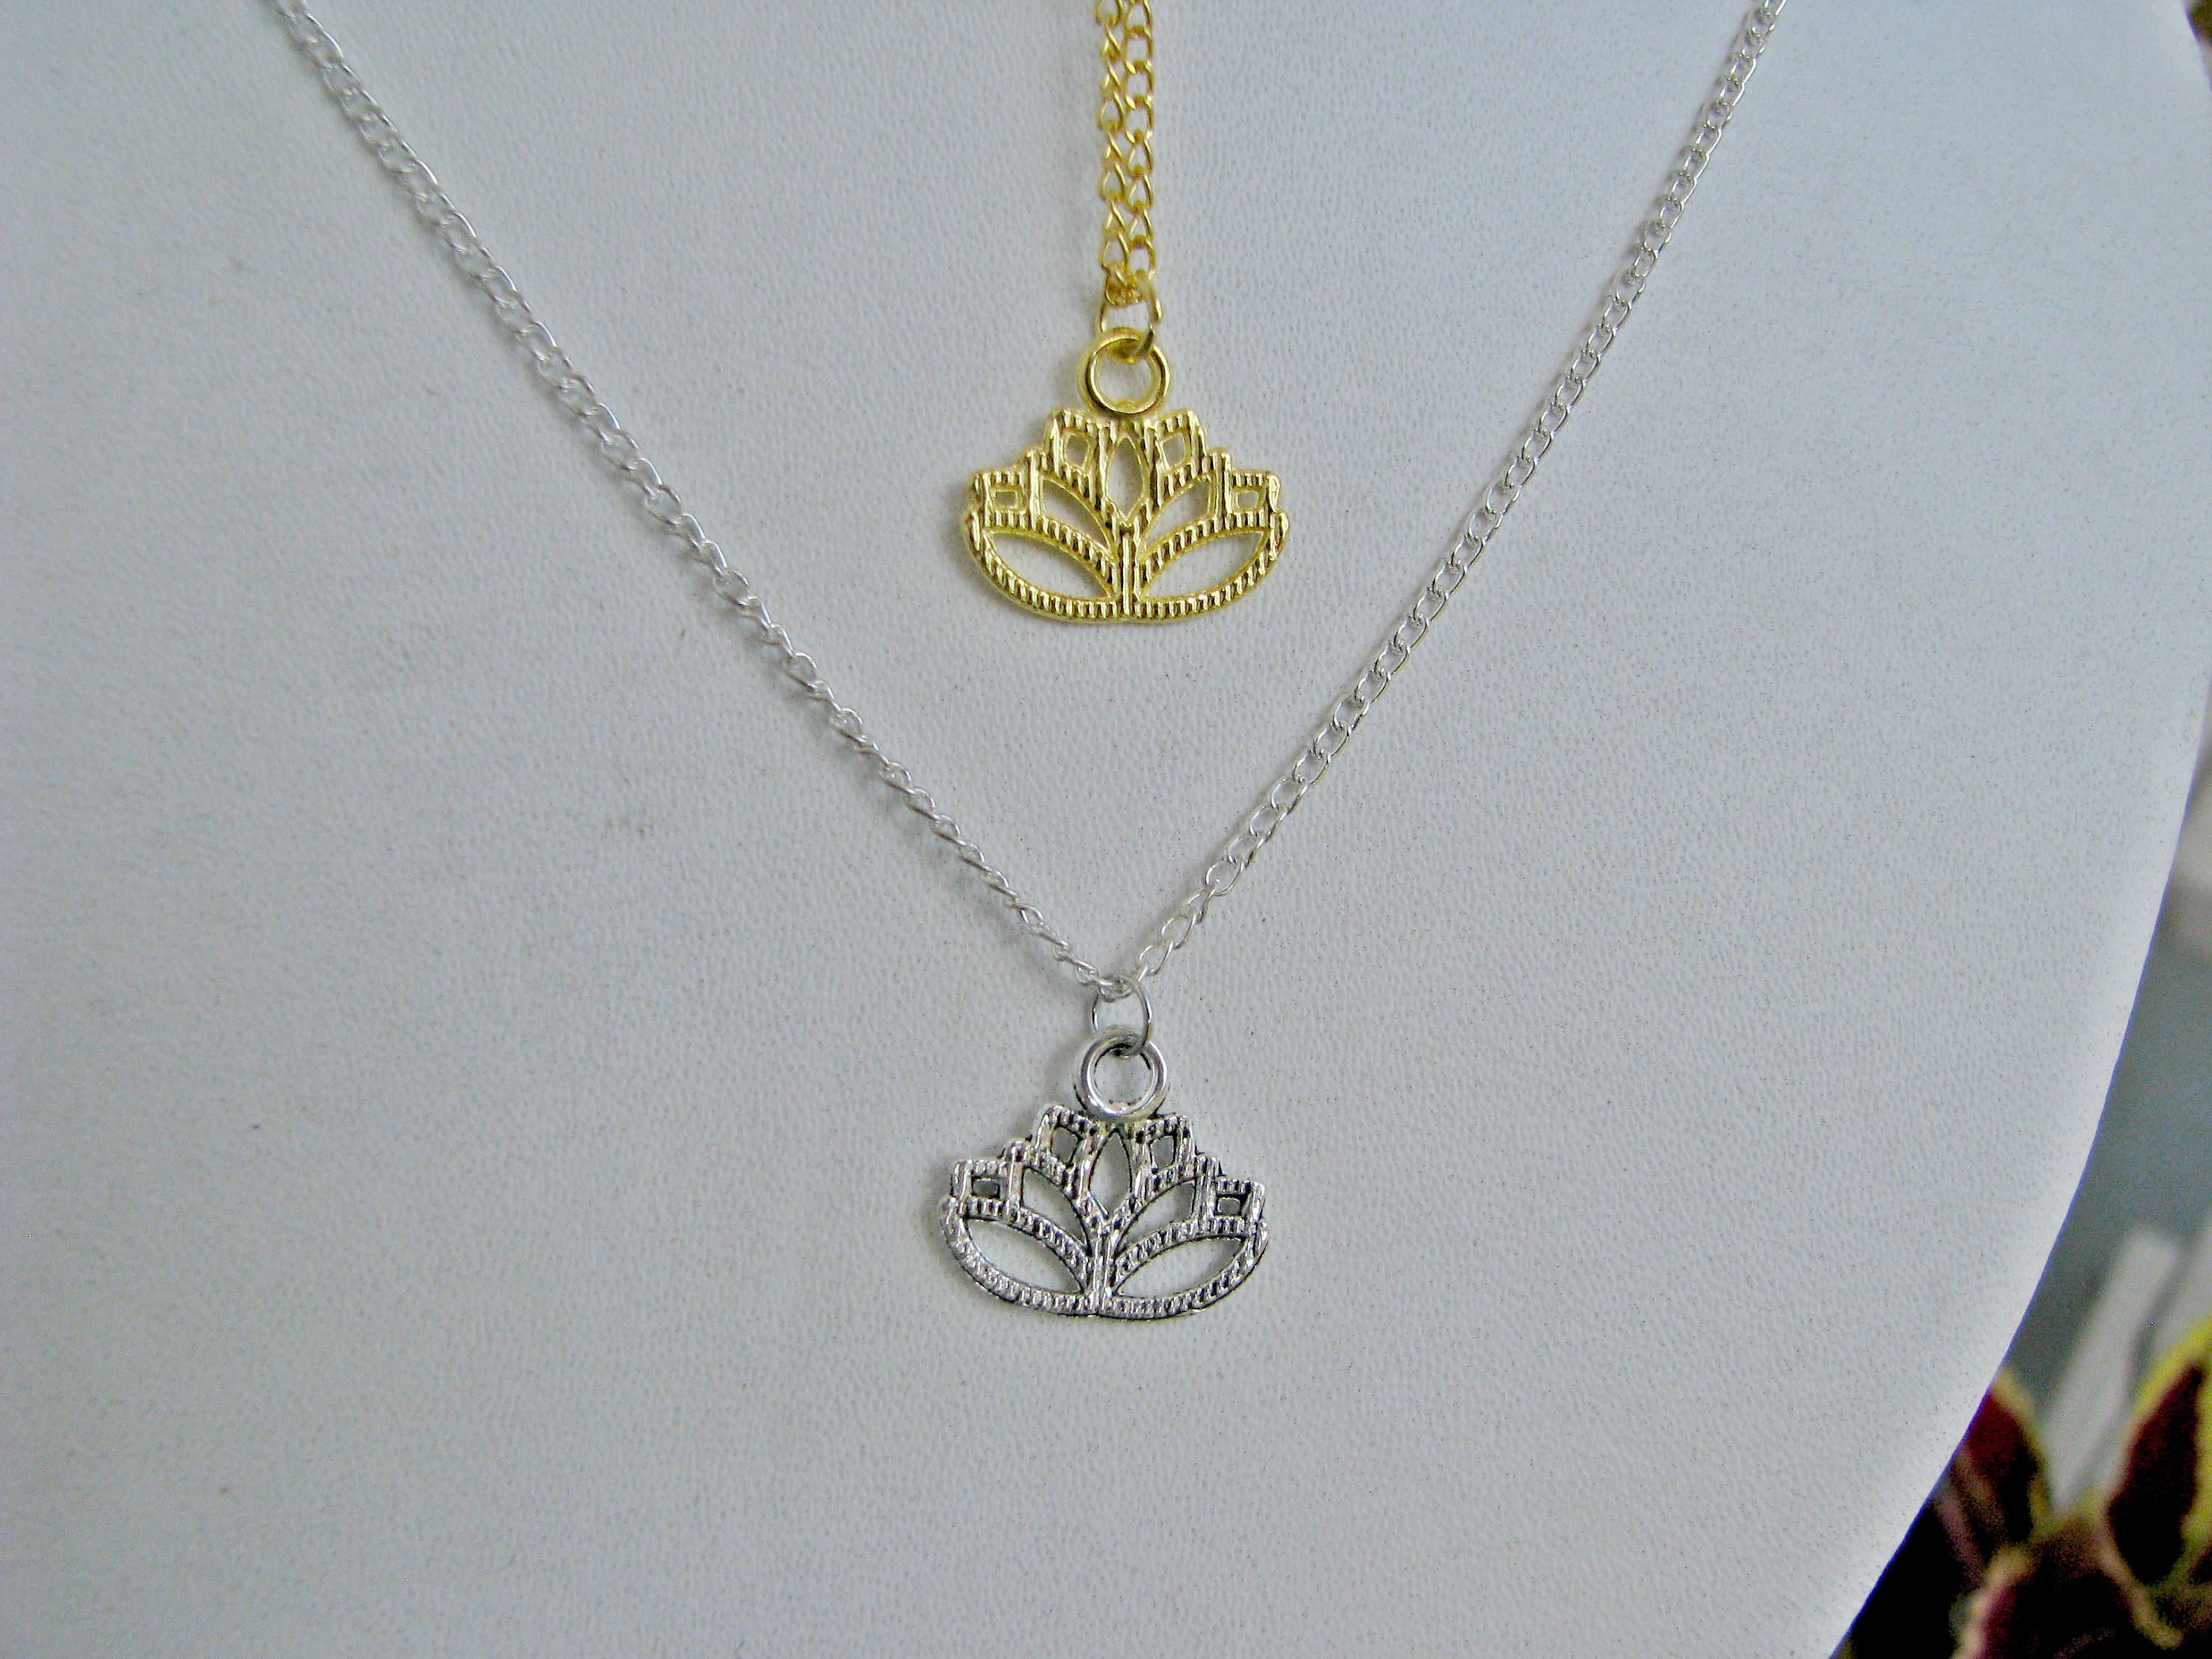 flower delicatenecklaces lights delicate northern gold silver necklaces necklace sterling lotus